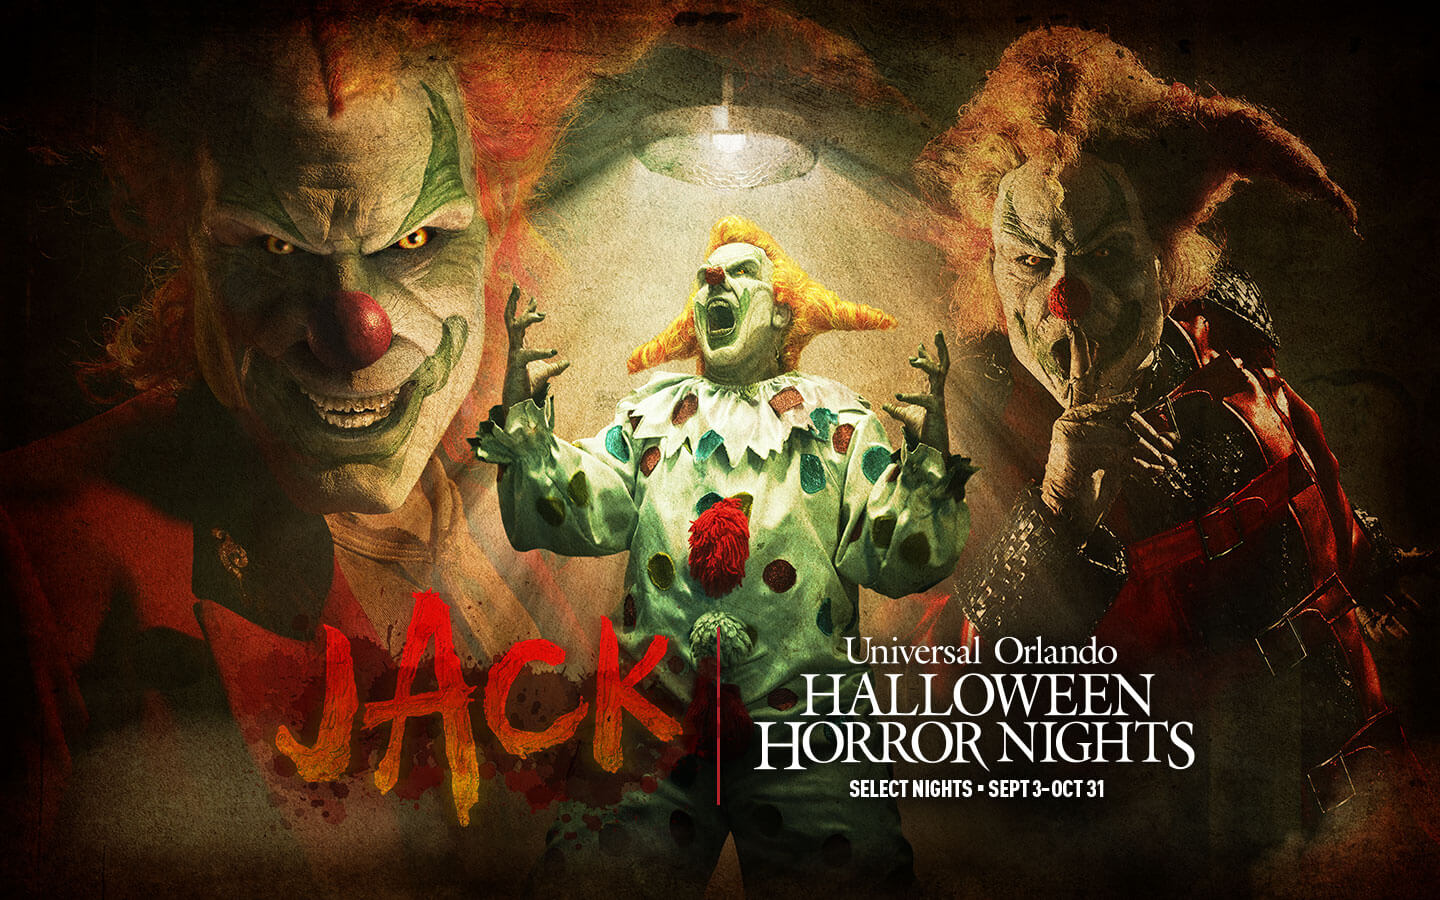 Expect this to fall around the holiday week, so start keeping an eye out from november 24th, 2021. Tickets are now on sale for 2021 Halloween Horror Nights at Universal Orlando | Chip and Company